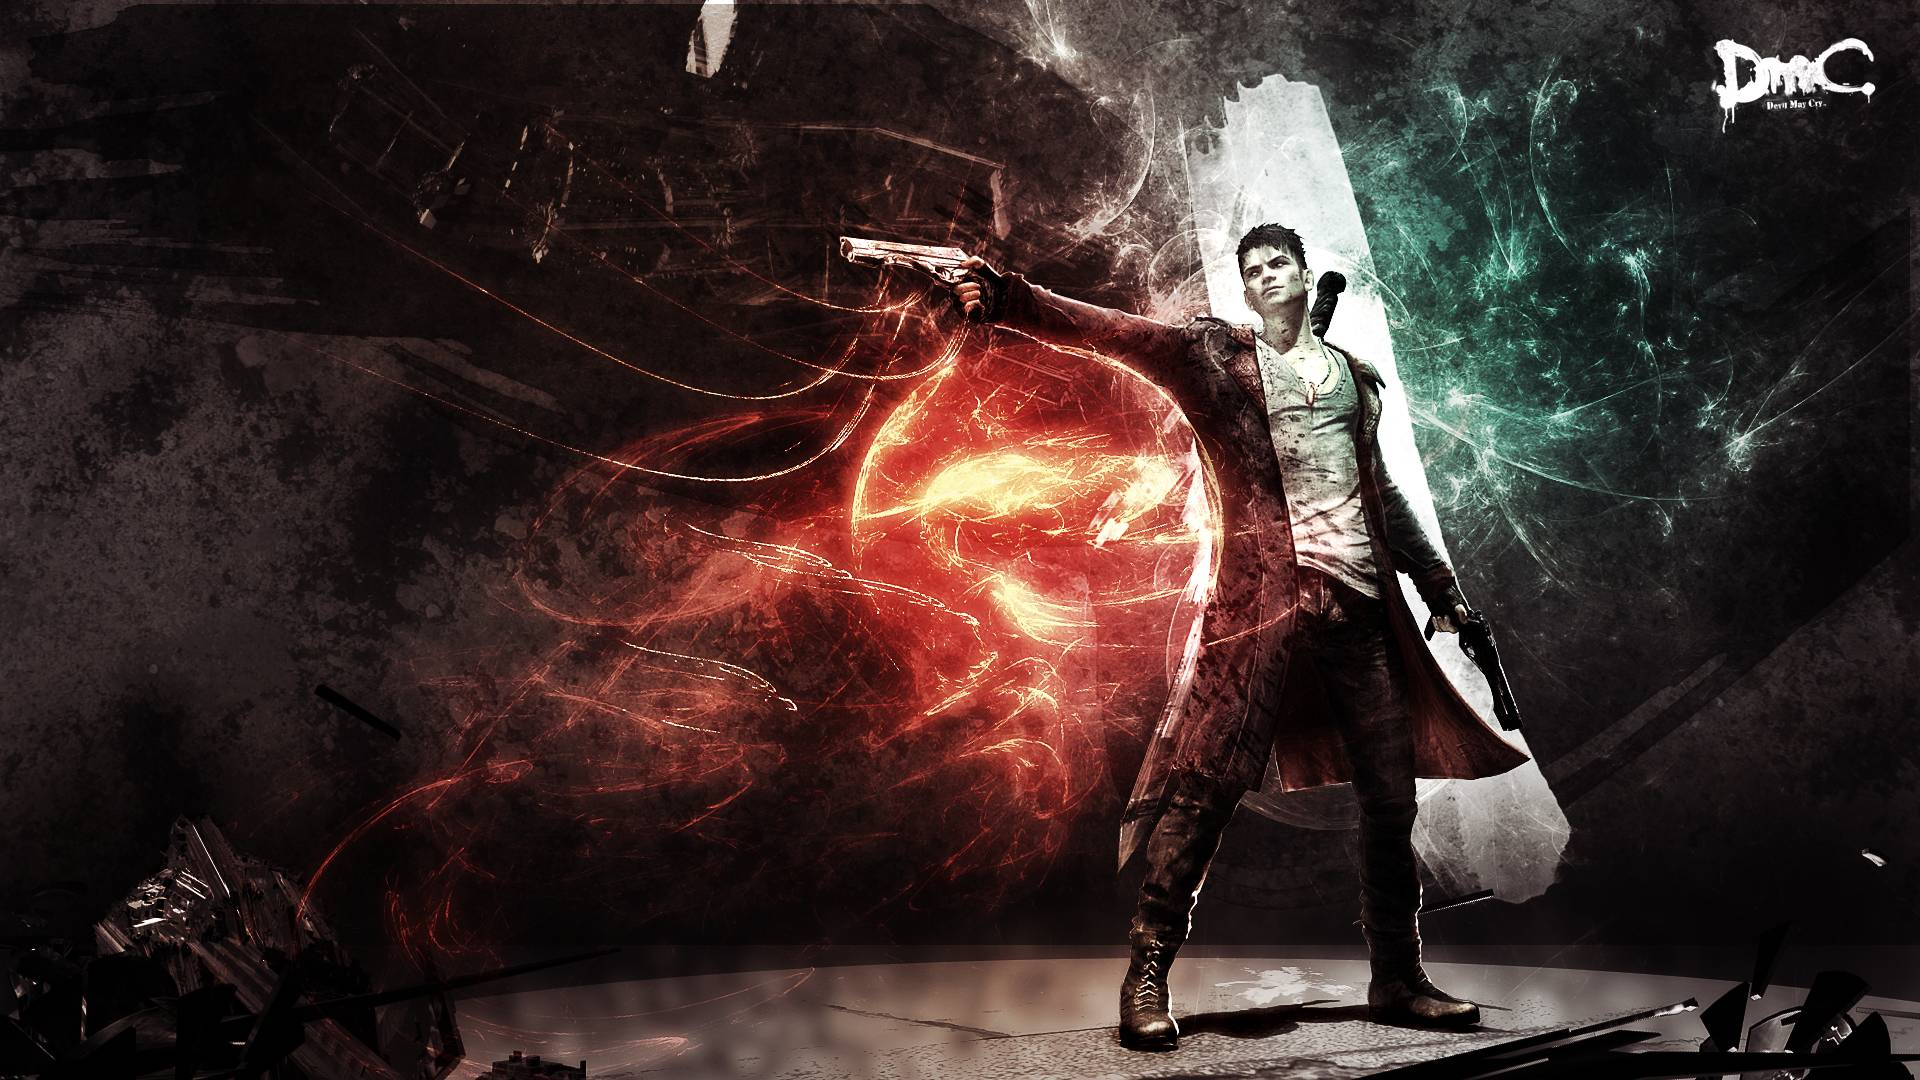 DmC: Devil May Cry Fails To Attract Casual Fans in Japan (Or Does it?)